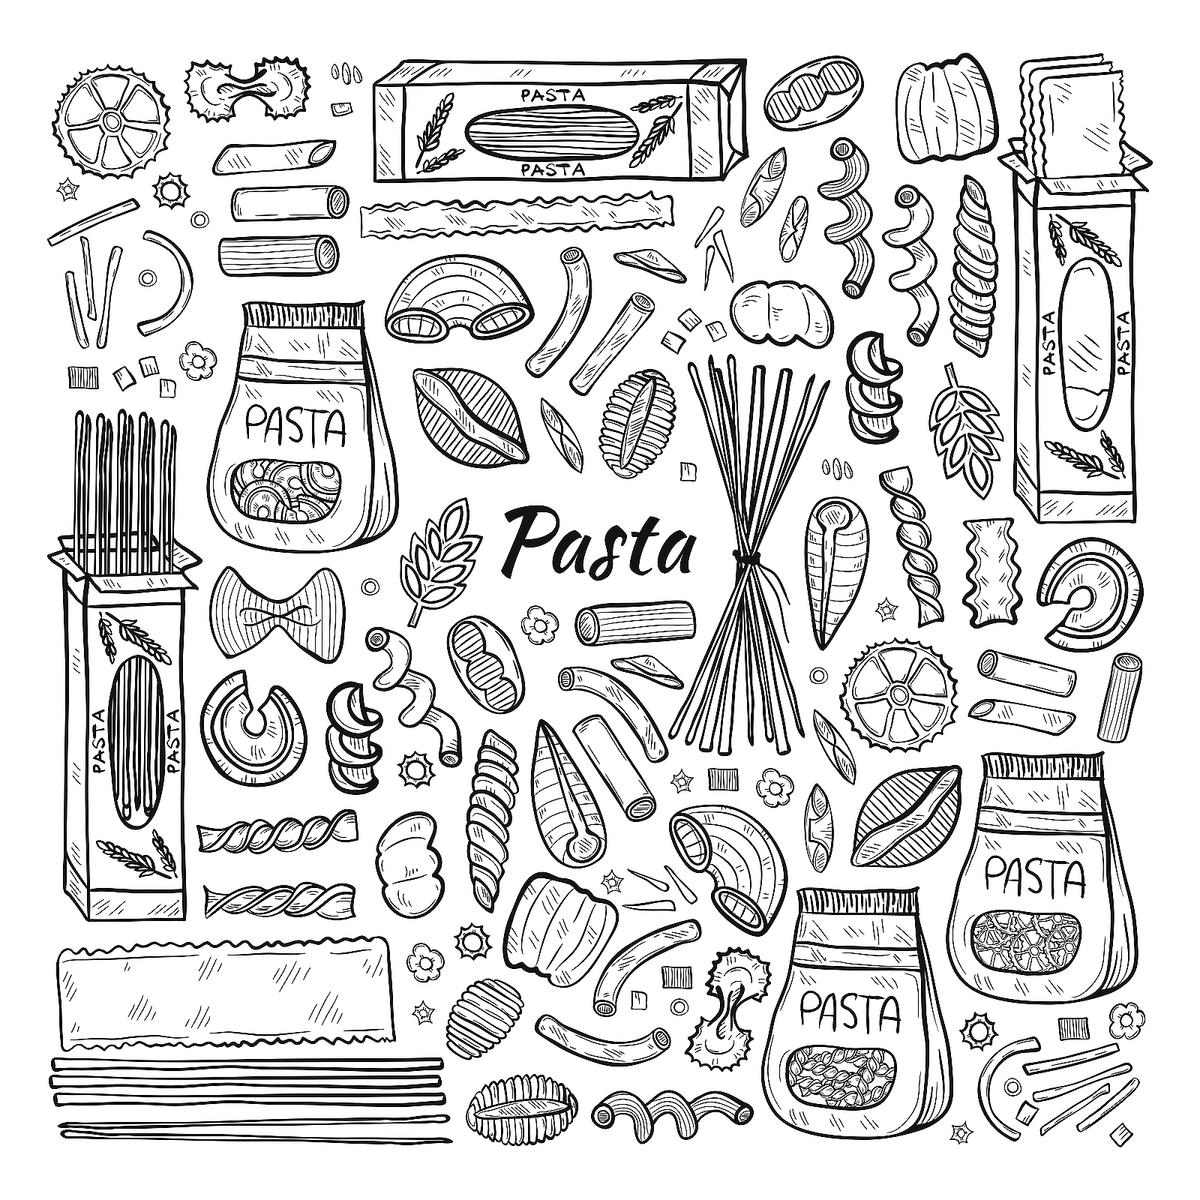 Food Coloring Pages 20 Free Printable Coloring Pages Of Food That Will Make Your Stomach Growl Printables 30seconds Mom